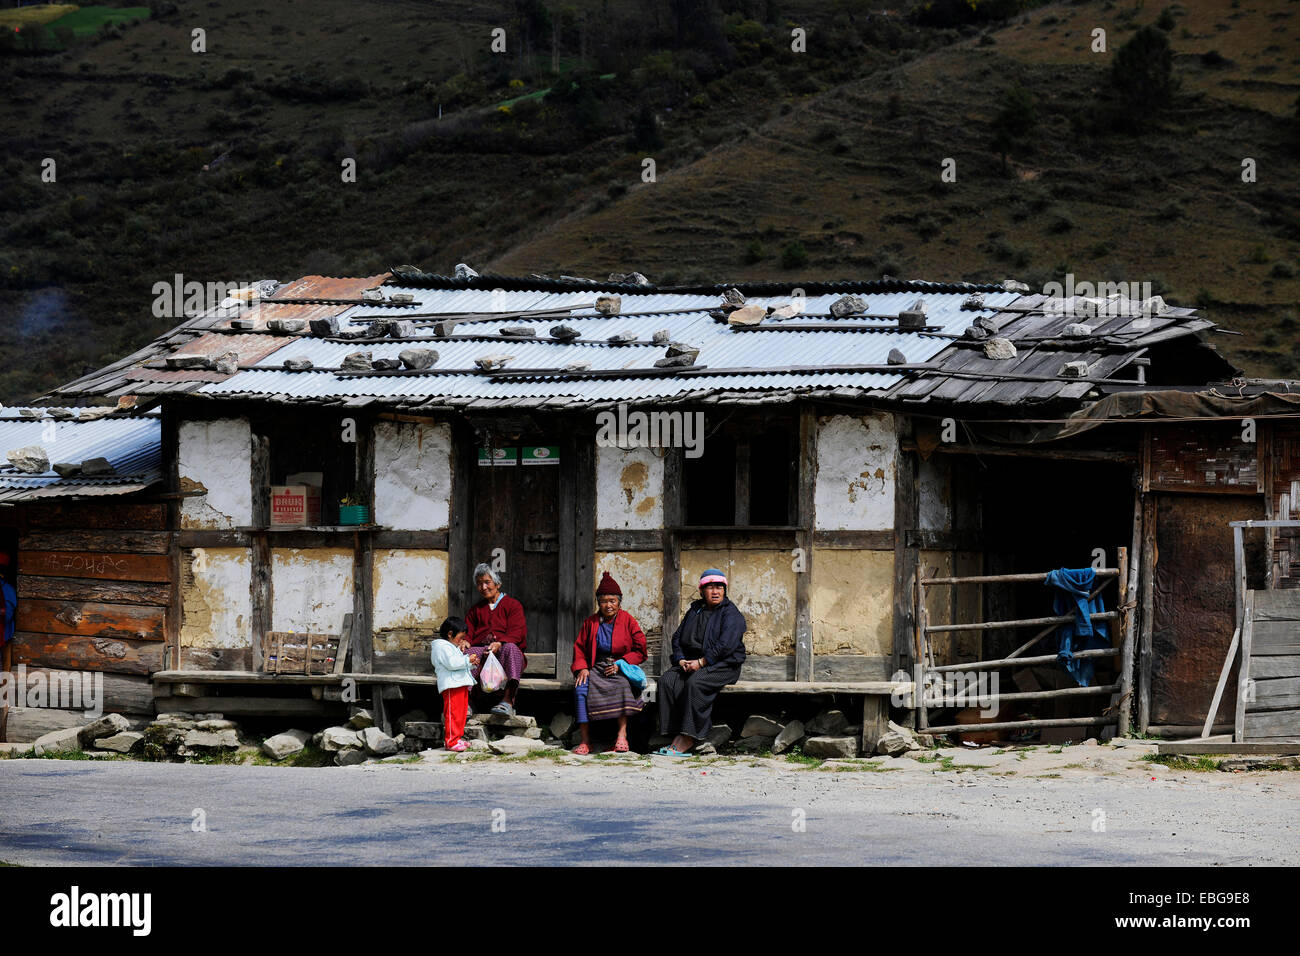 Small shop on the roadside with people sitting out the front, Pela La Pass, Wangdue Phodrang District, Bhutan - Stock Image